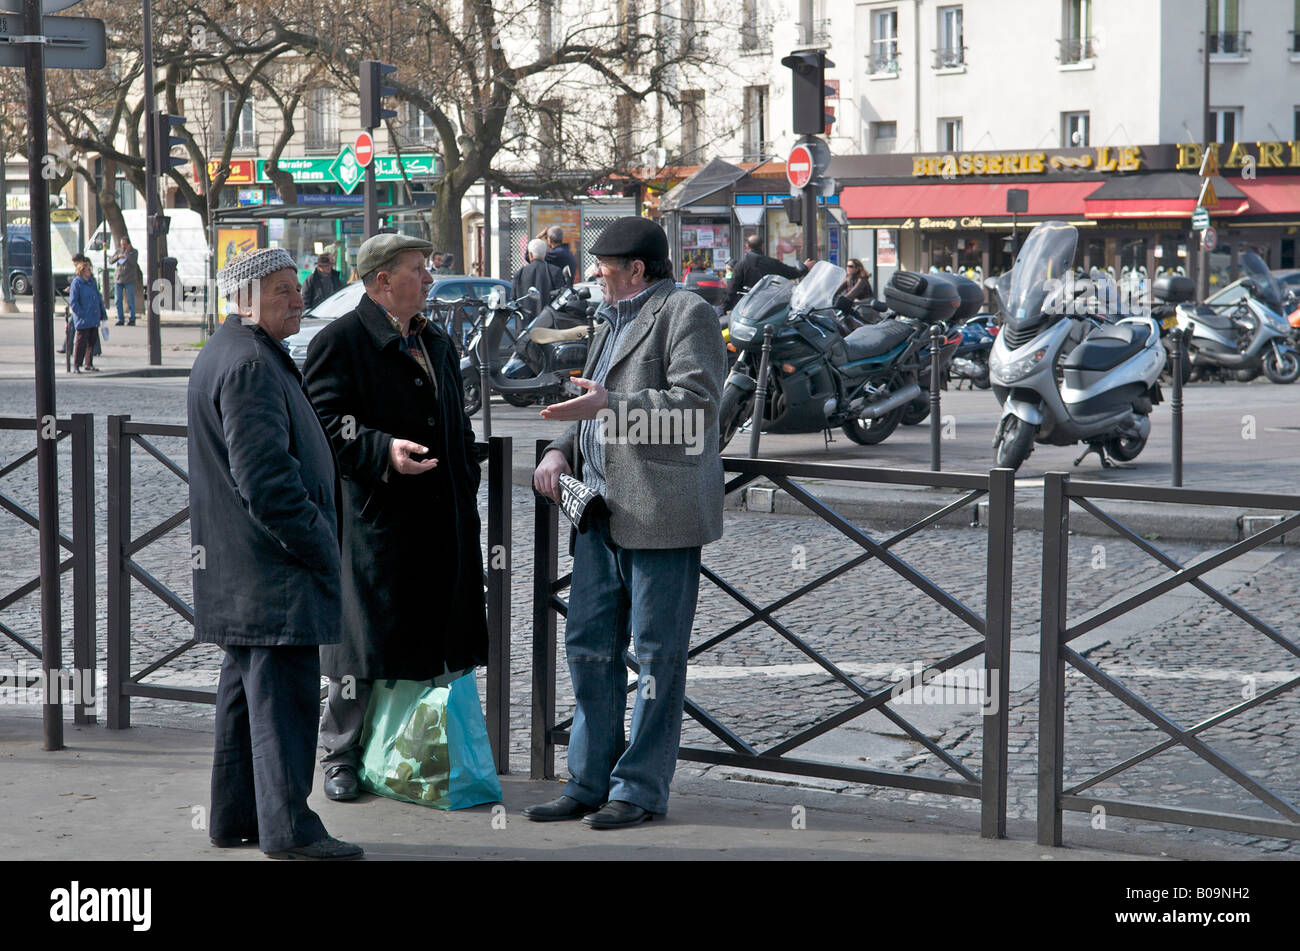 Frenchmen talking on the street in Paris - Stock Image